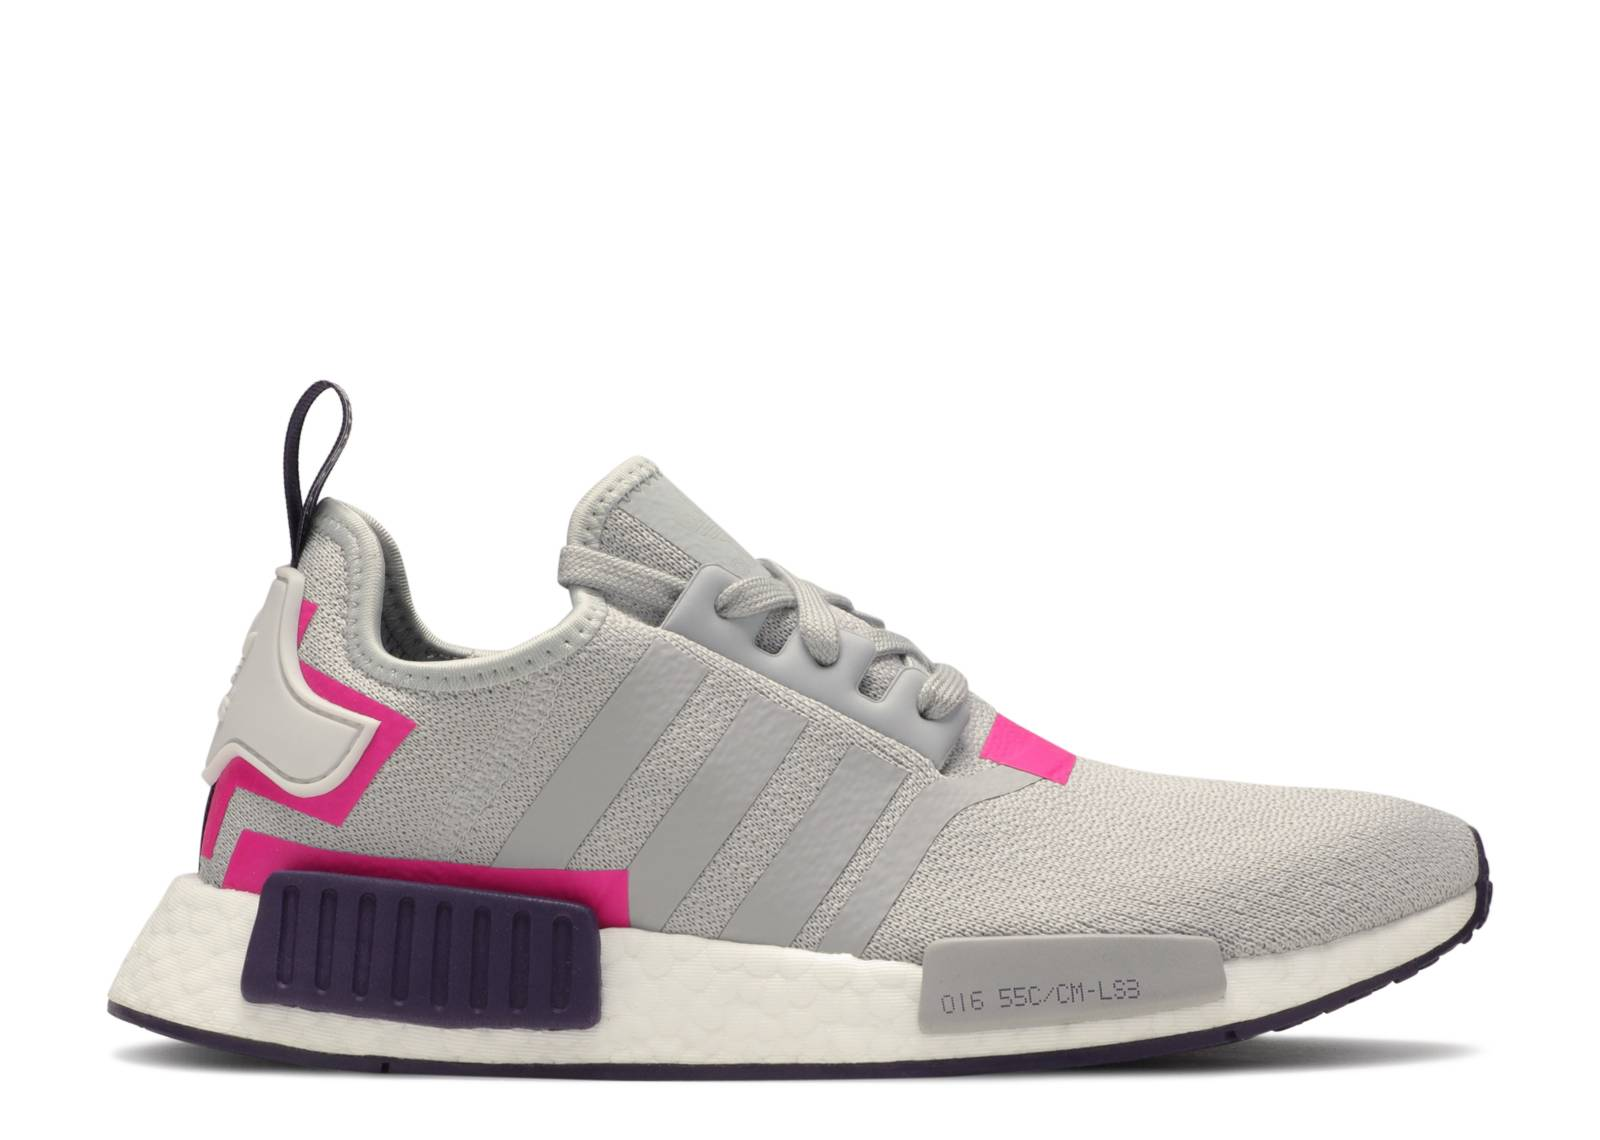 bas prix 066fa c3b55 Adidas NMD - adidas Originals Men's & Women's Shoes | Flight ...